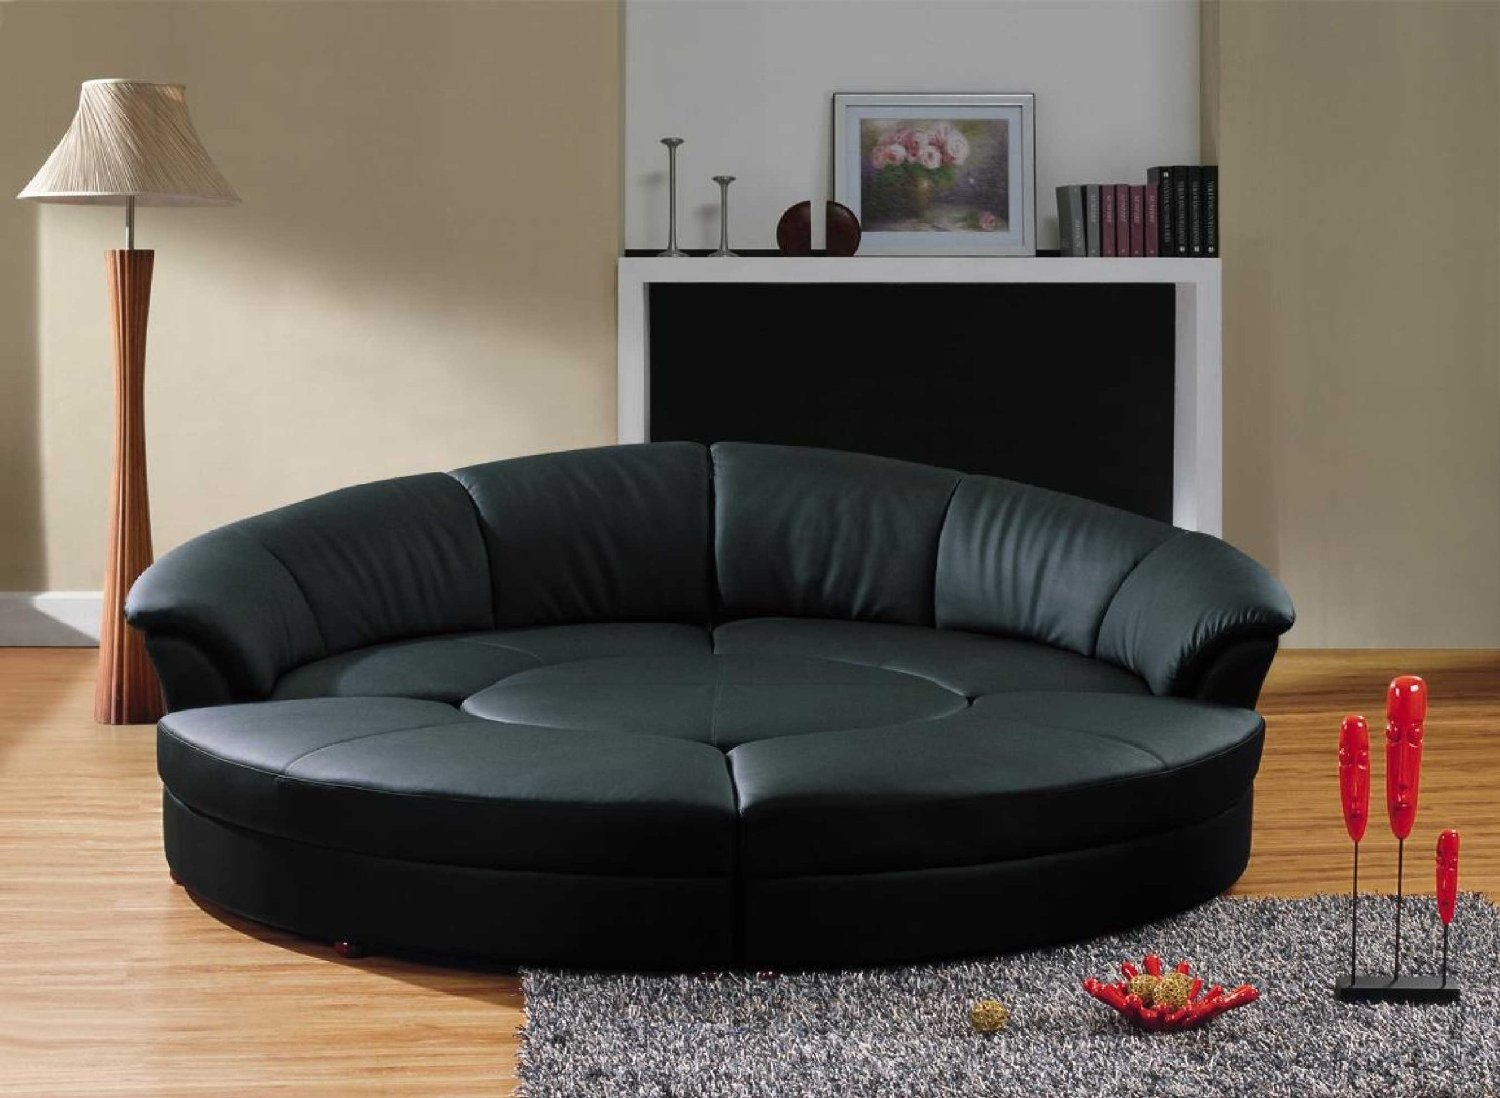 Lofty Round Sofa Chair Living Room Inside Circular Sofa Chairs (Image 3 of 15)